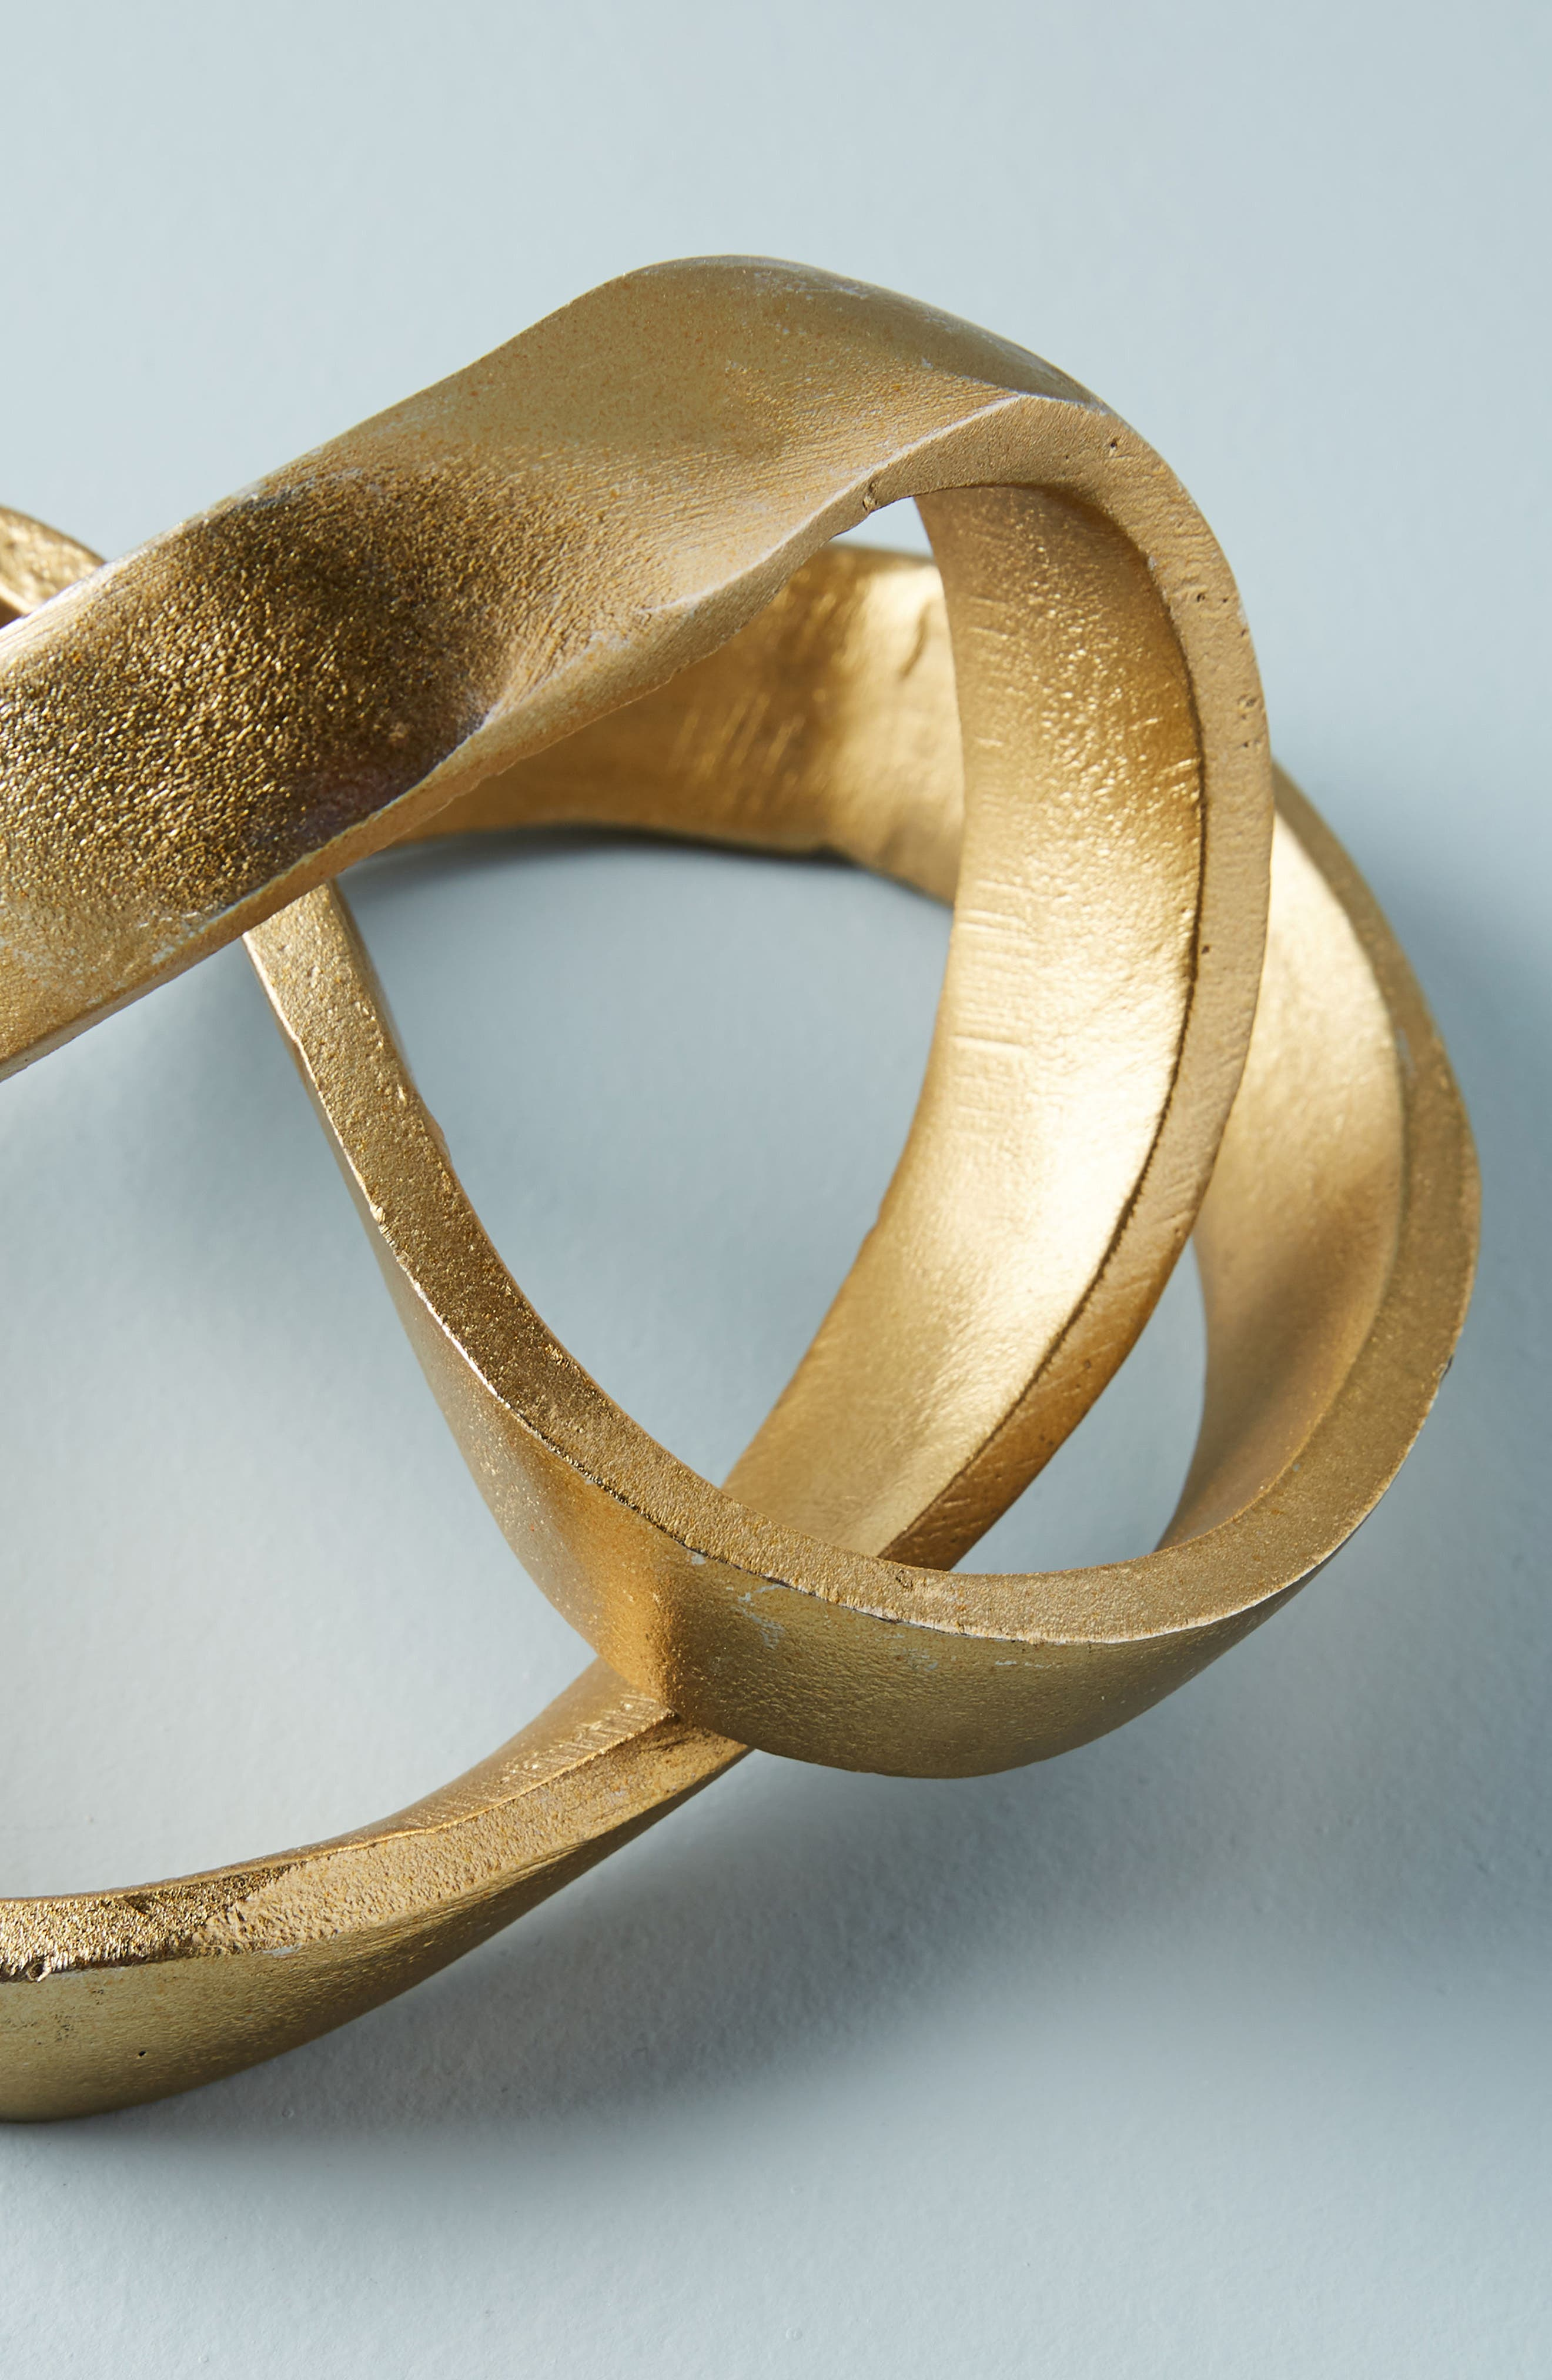 Knotted Decorative Object,                             Alternate thumbnail 2, color,                             Gold